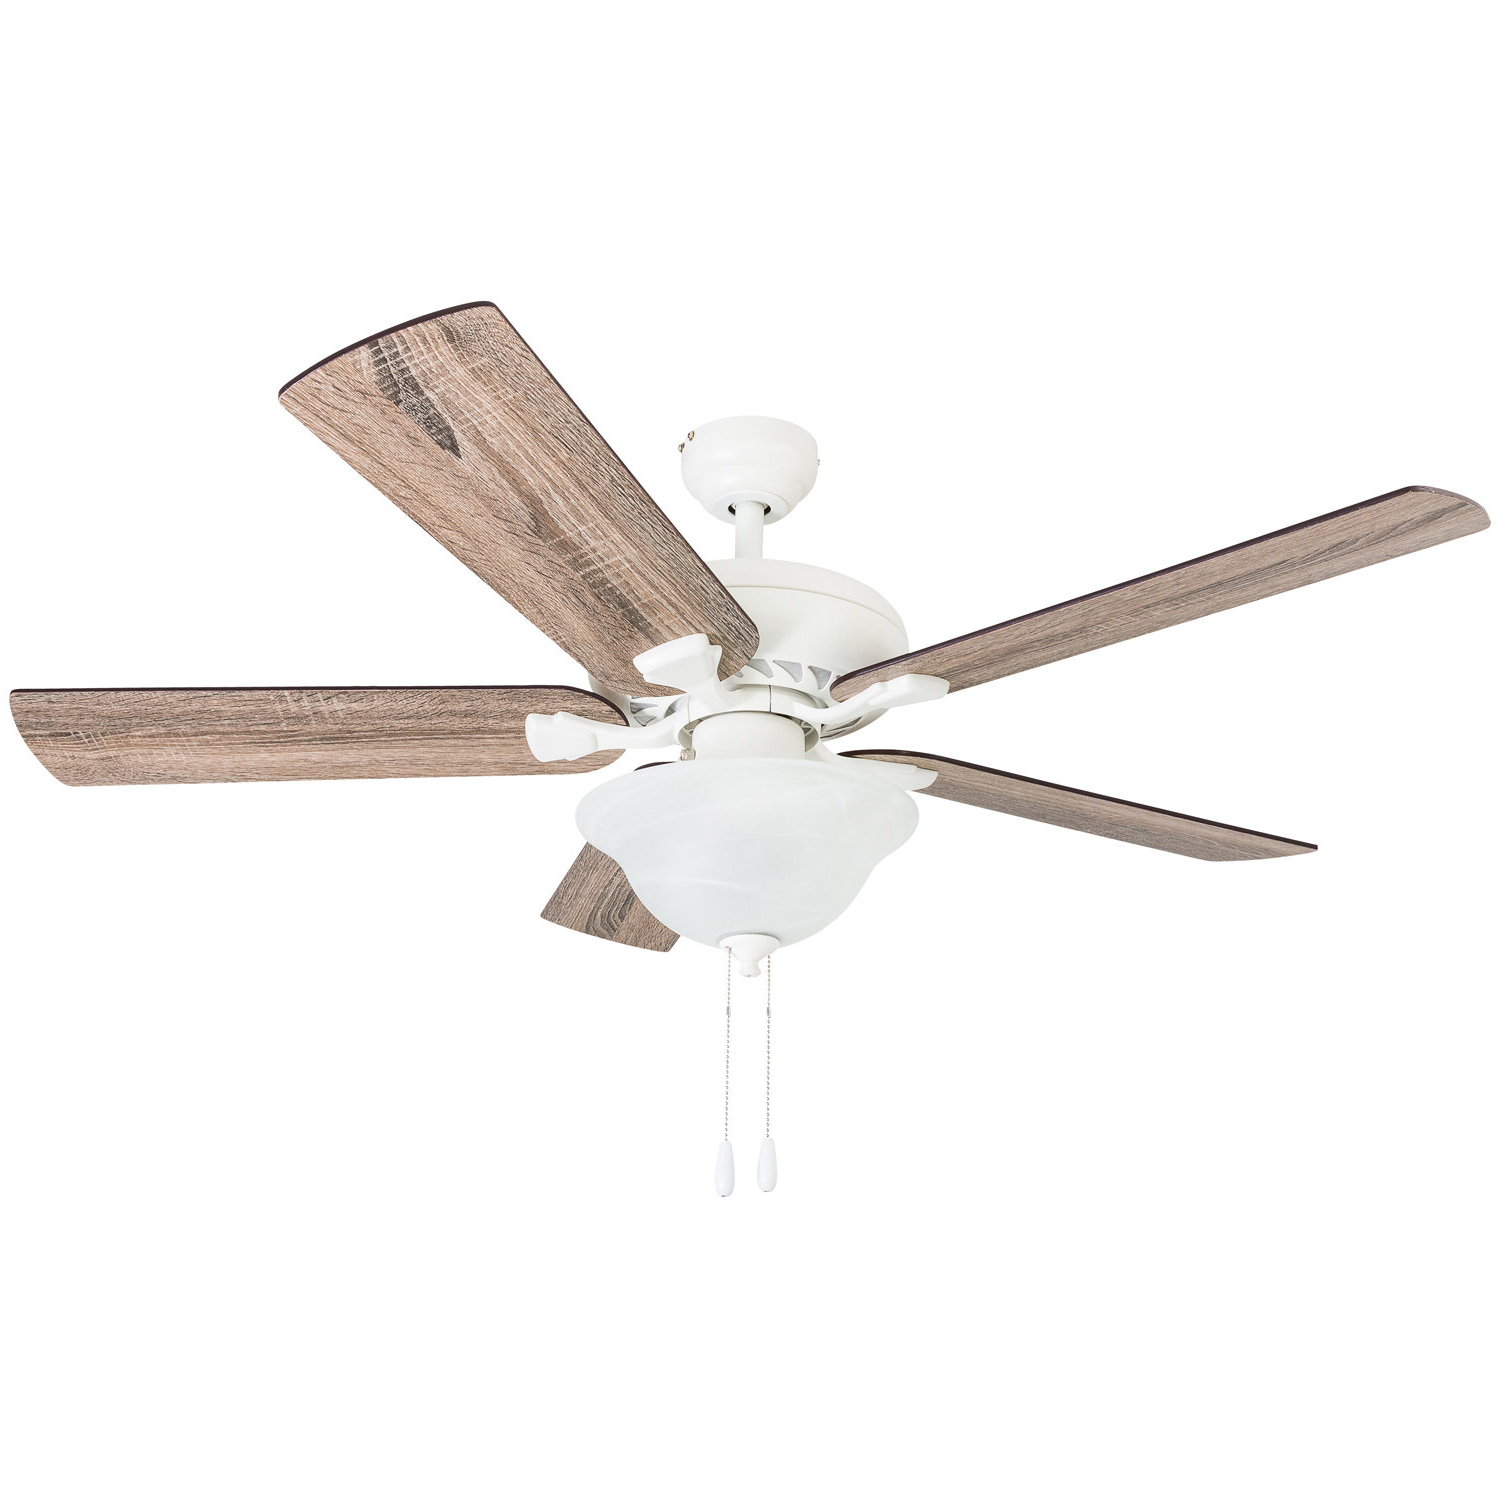 "Eliora 5 Blade Ceiling Fans Intended For Preferred 52"" Bednarek 5 Blade Led Ceiling Fan (Gallery 11 of 20)"